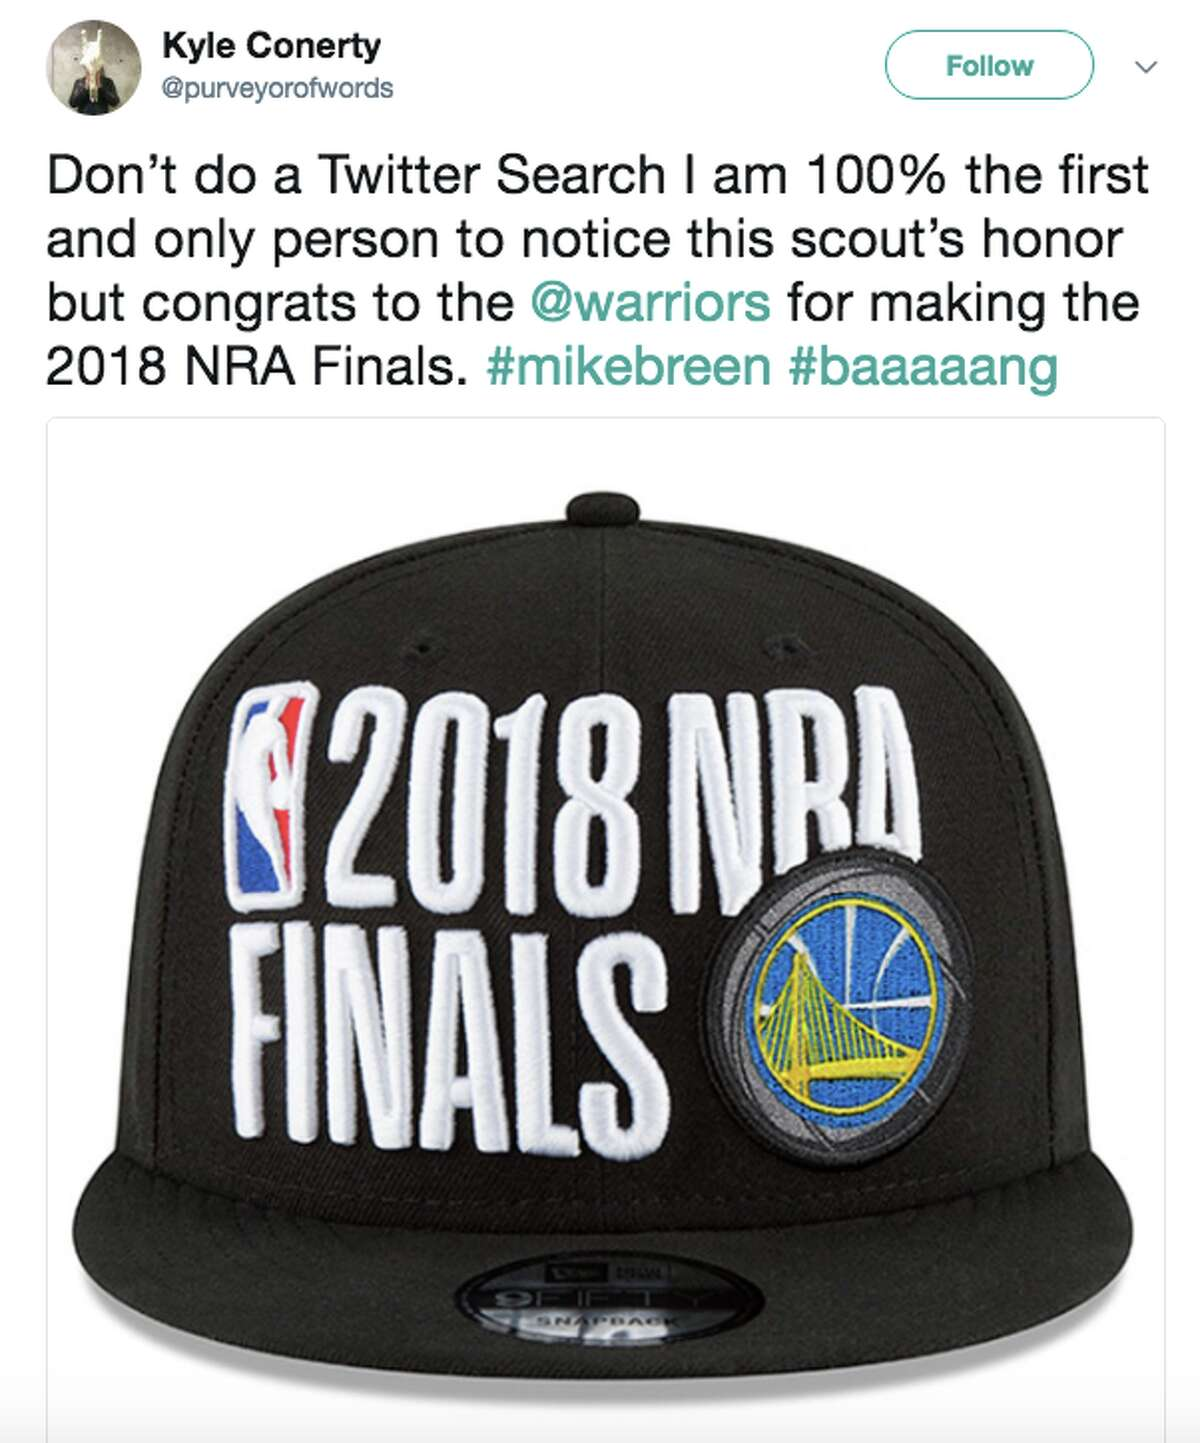 Basketball fans reacted to the 2018 NBA Finals hats on Twitter, saying they look like they say 2018 NRA Finals.